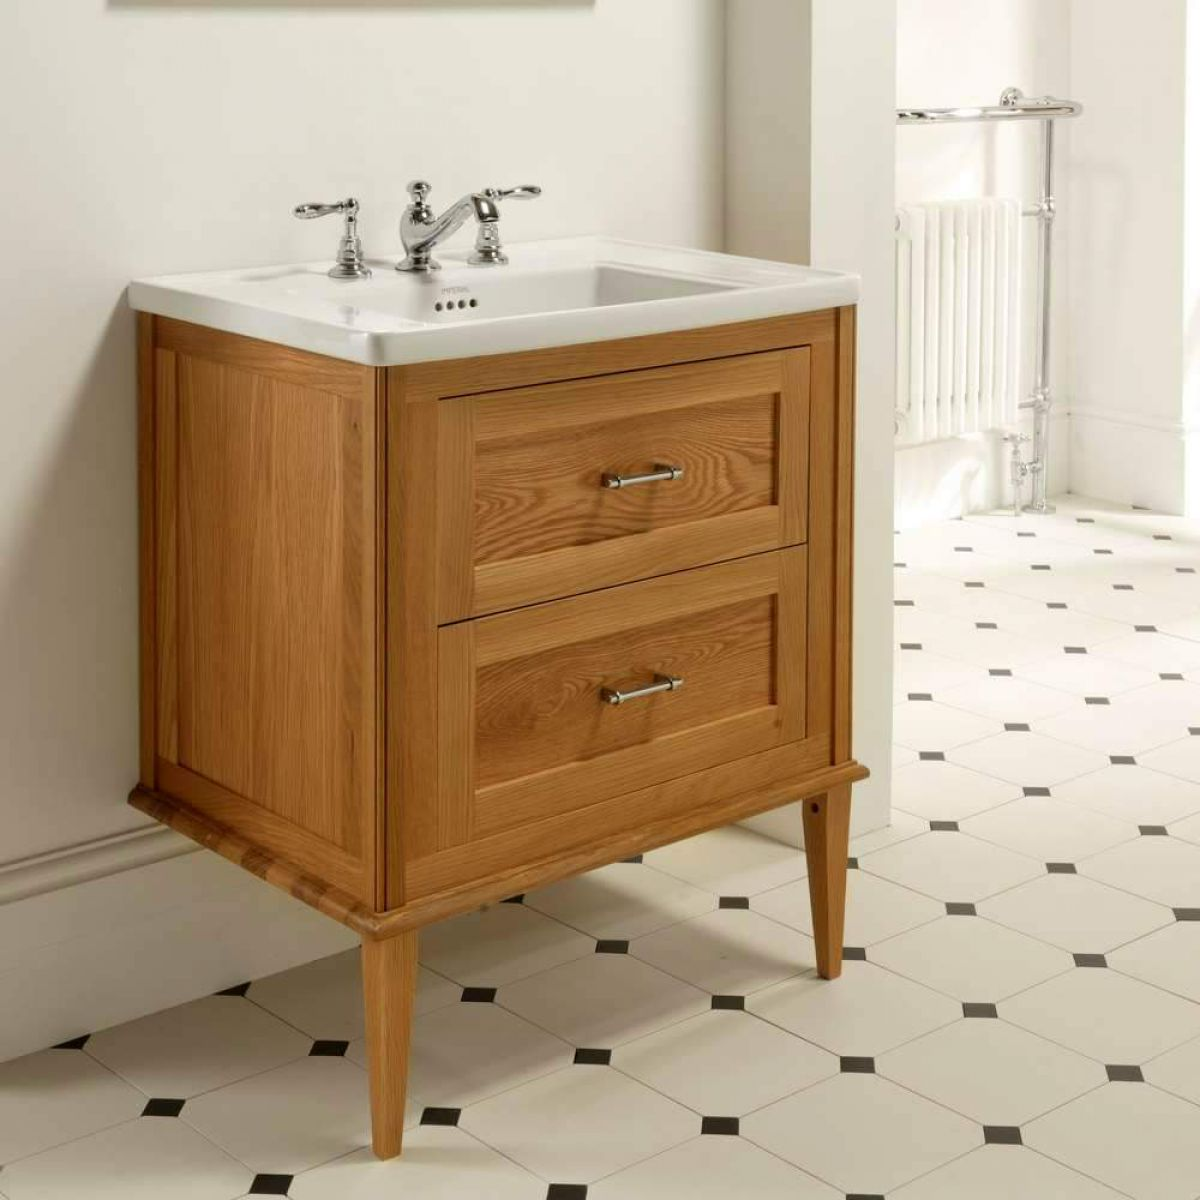 Home Bathroom Furniture Vanity Units Imperial Radcliffe Thurlestone Wall Hung Unit